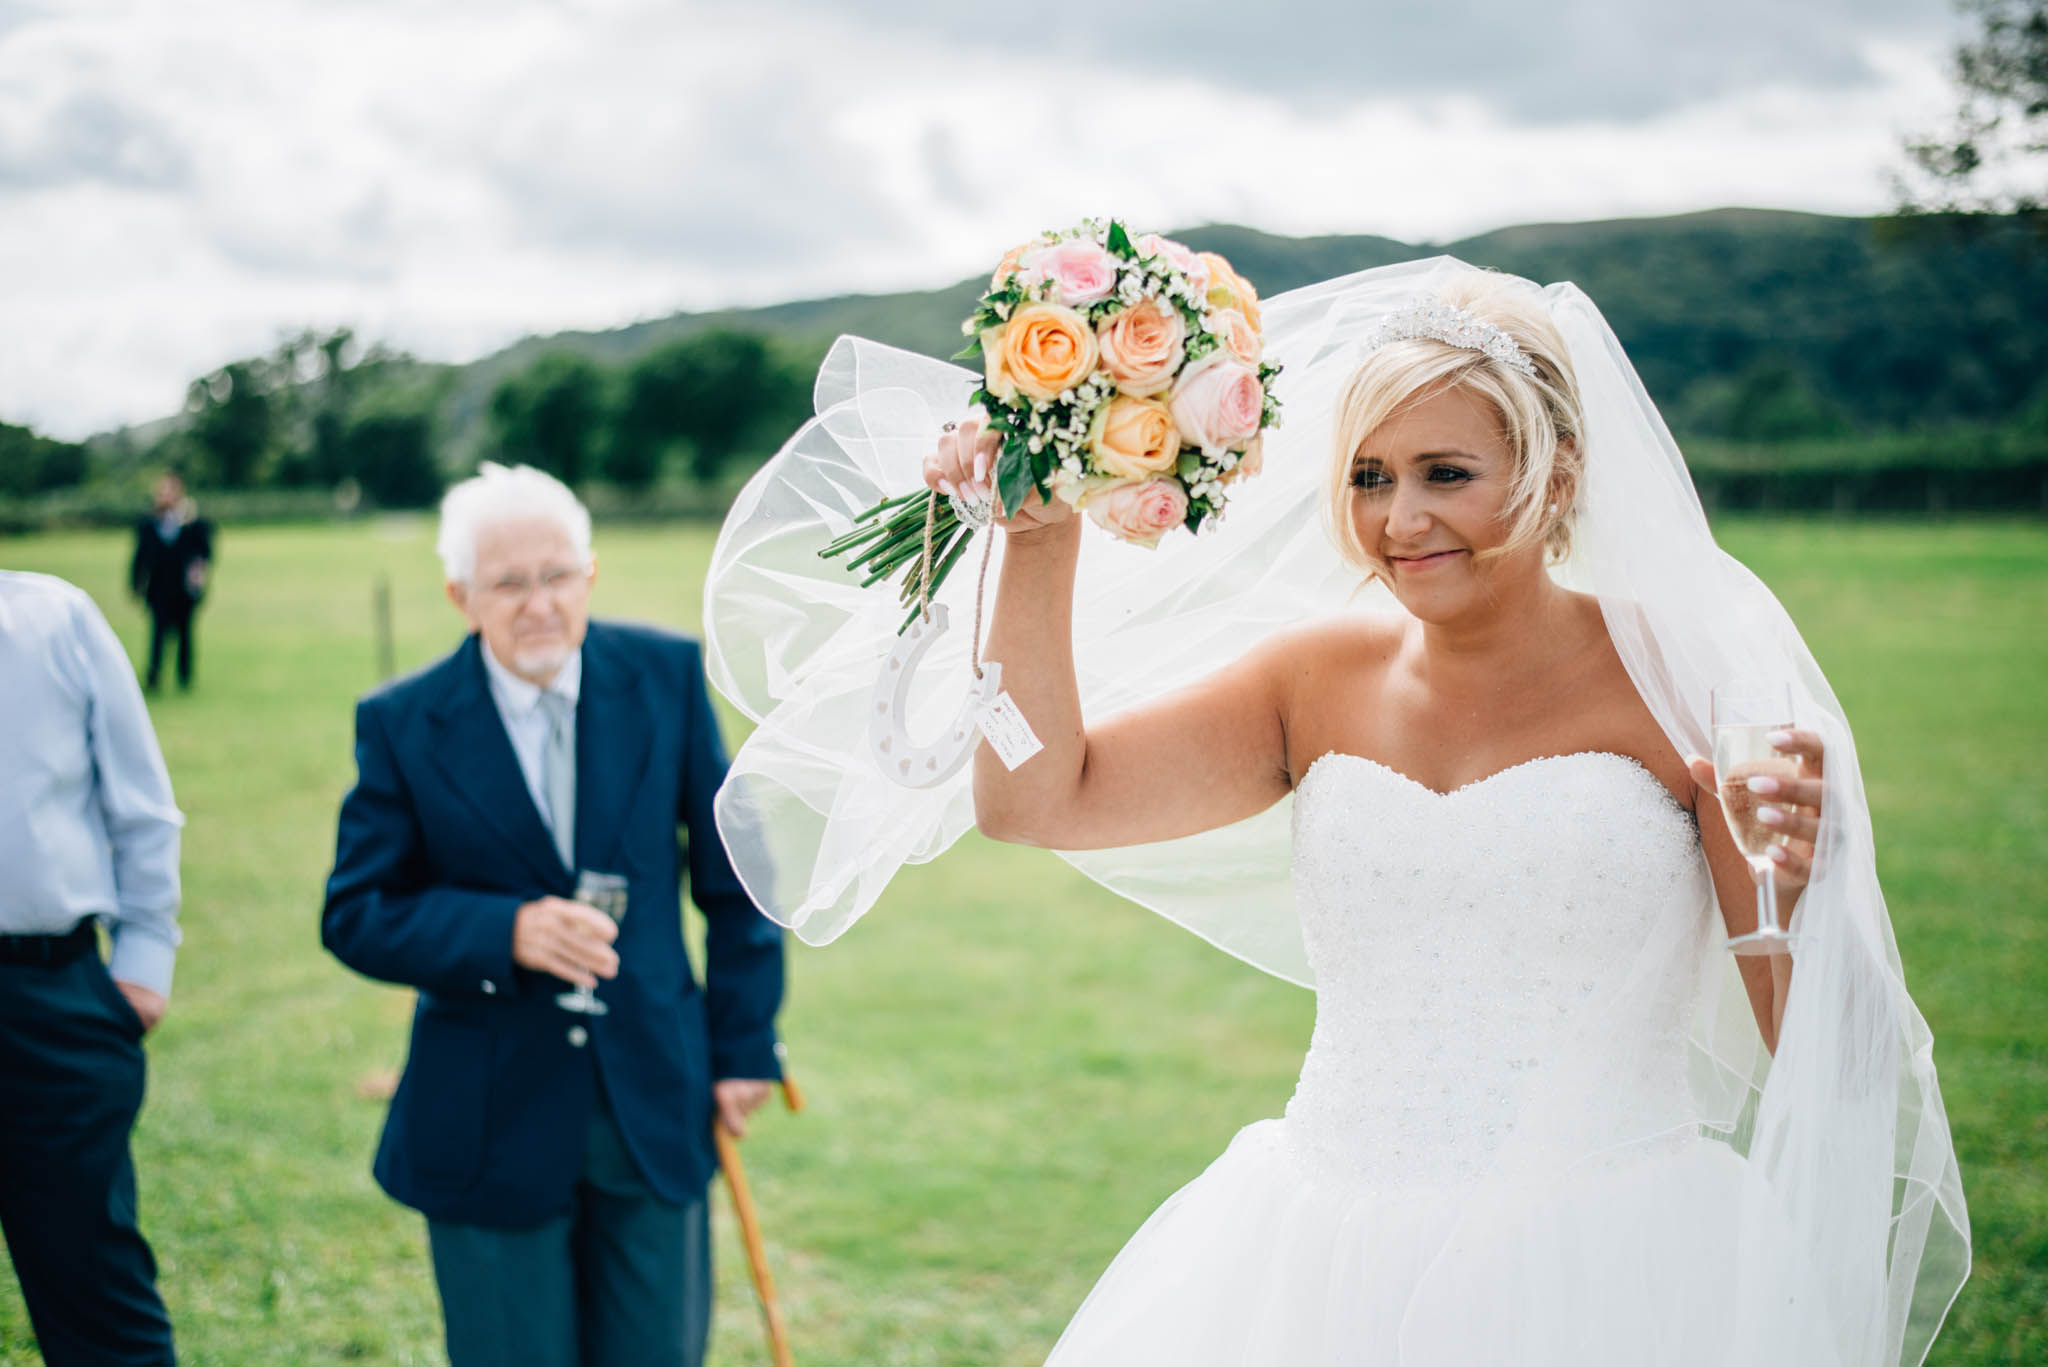 wind-swept-wedding-blog-scott-stockwell-photography-end-2017.jpg